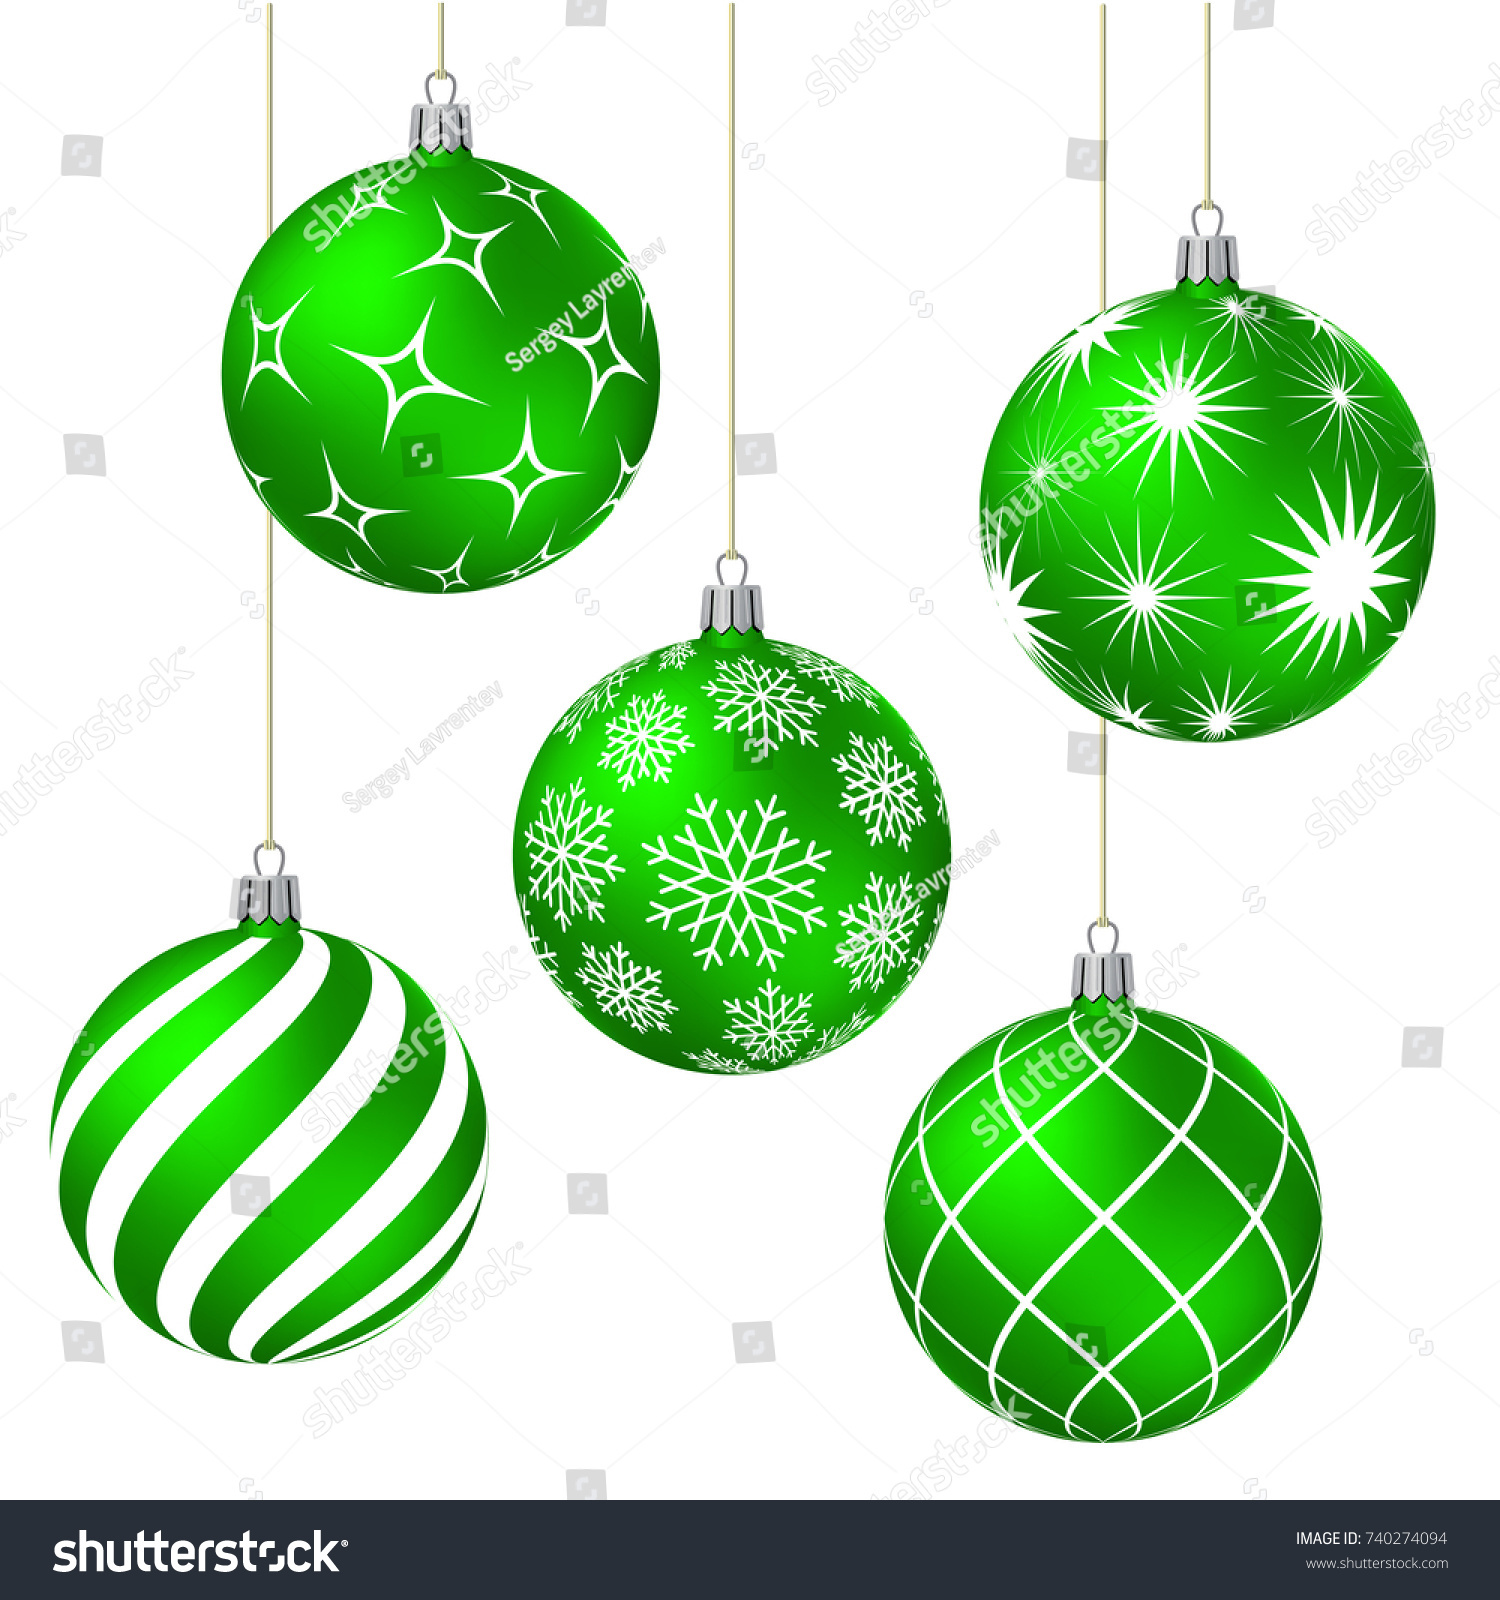 Green Christmas Balls With Different Patterns On White Vector Illustration